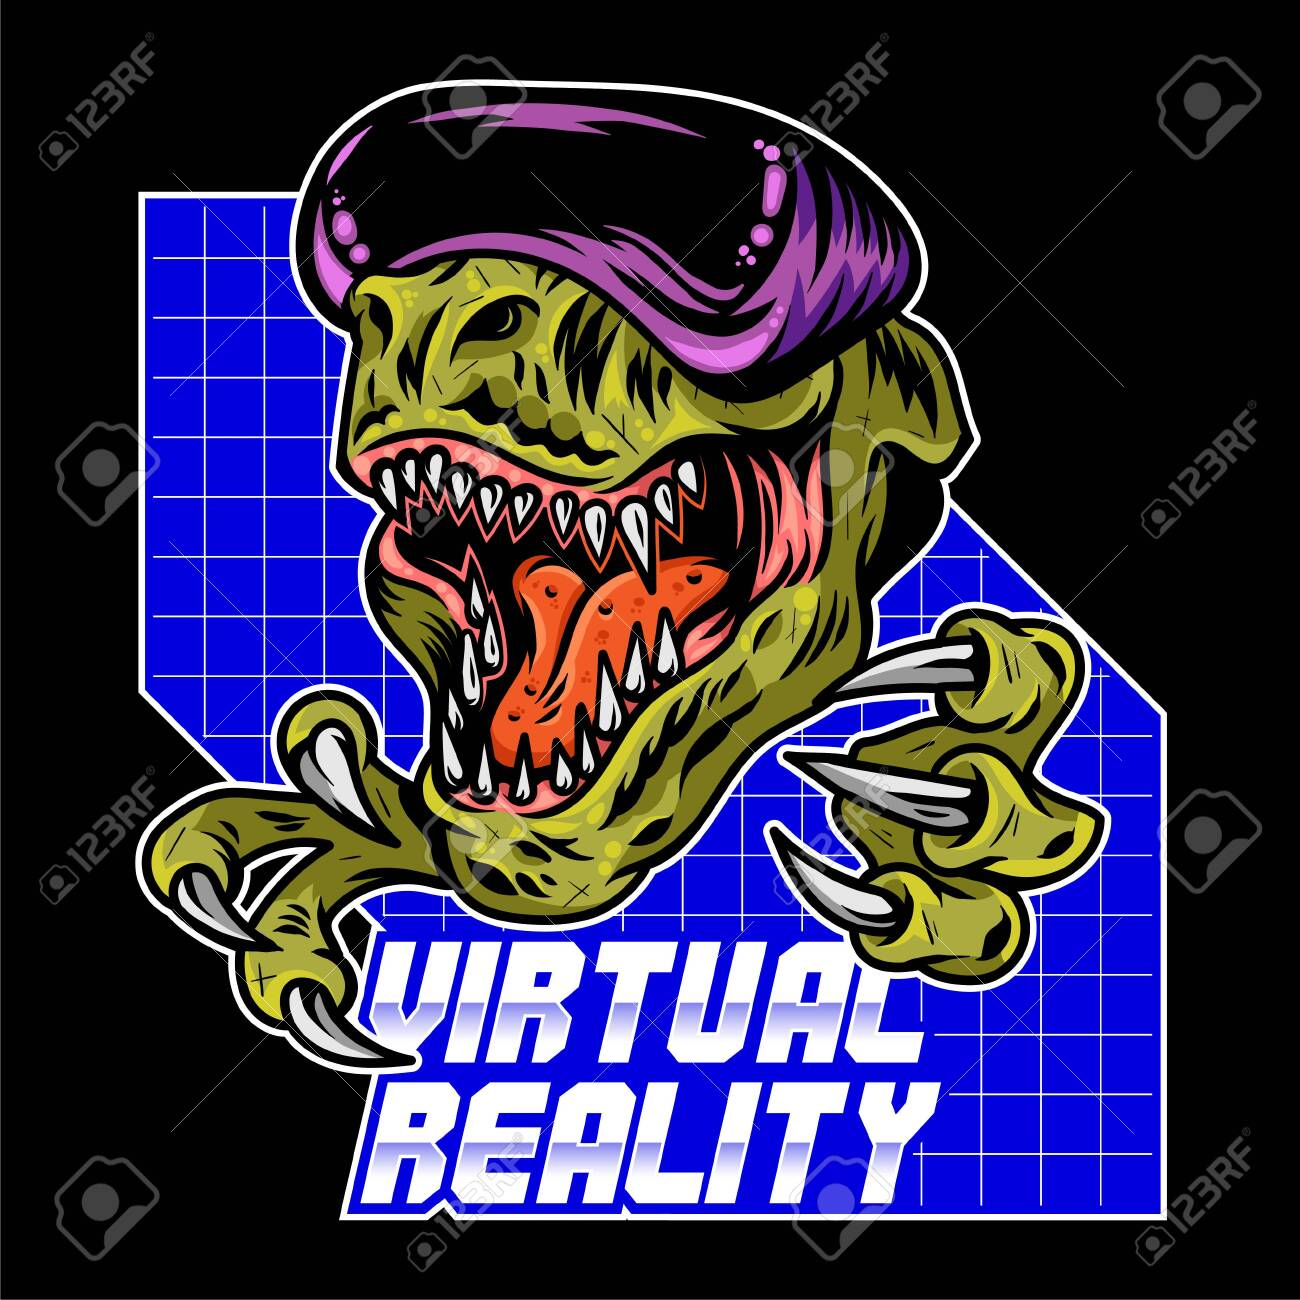 T Rex Dinosaur Angry Gamer Which Play Virtual Arcade Video Game Royalty Free Cliparts Vectors And Stock Illustration Image 138669555